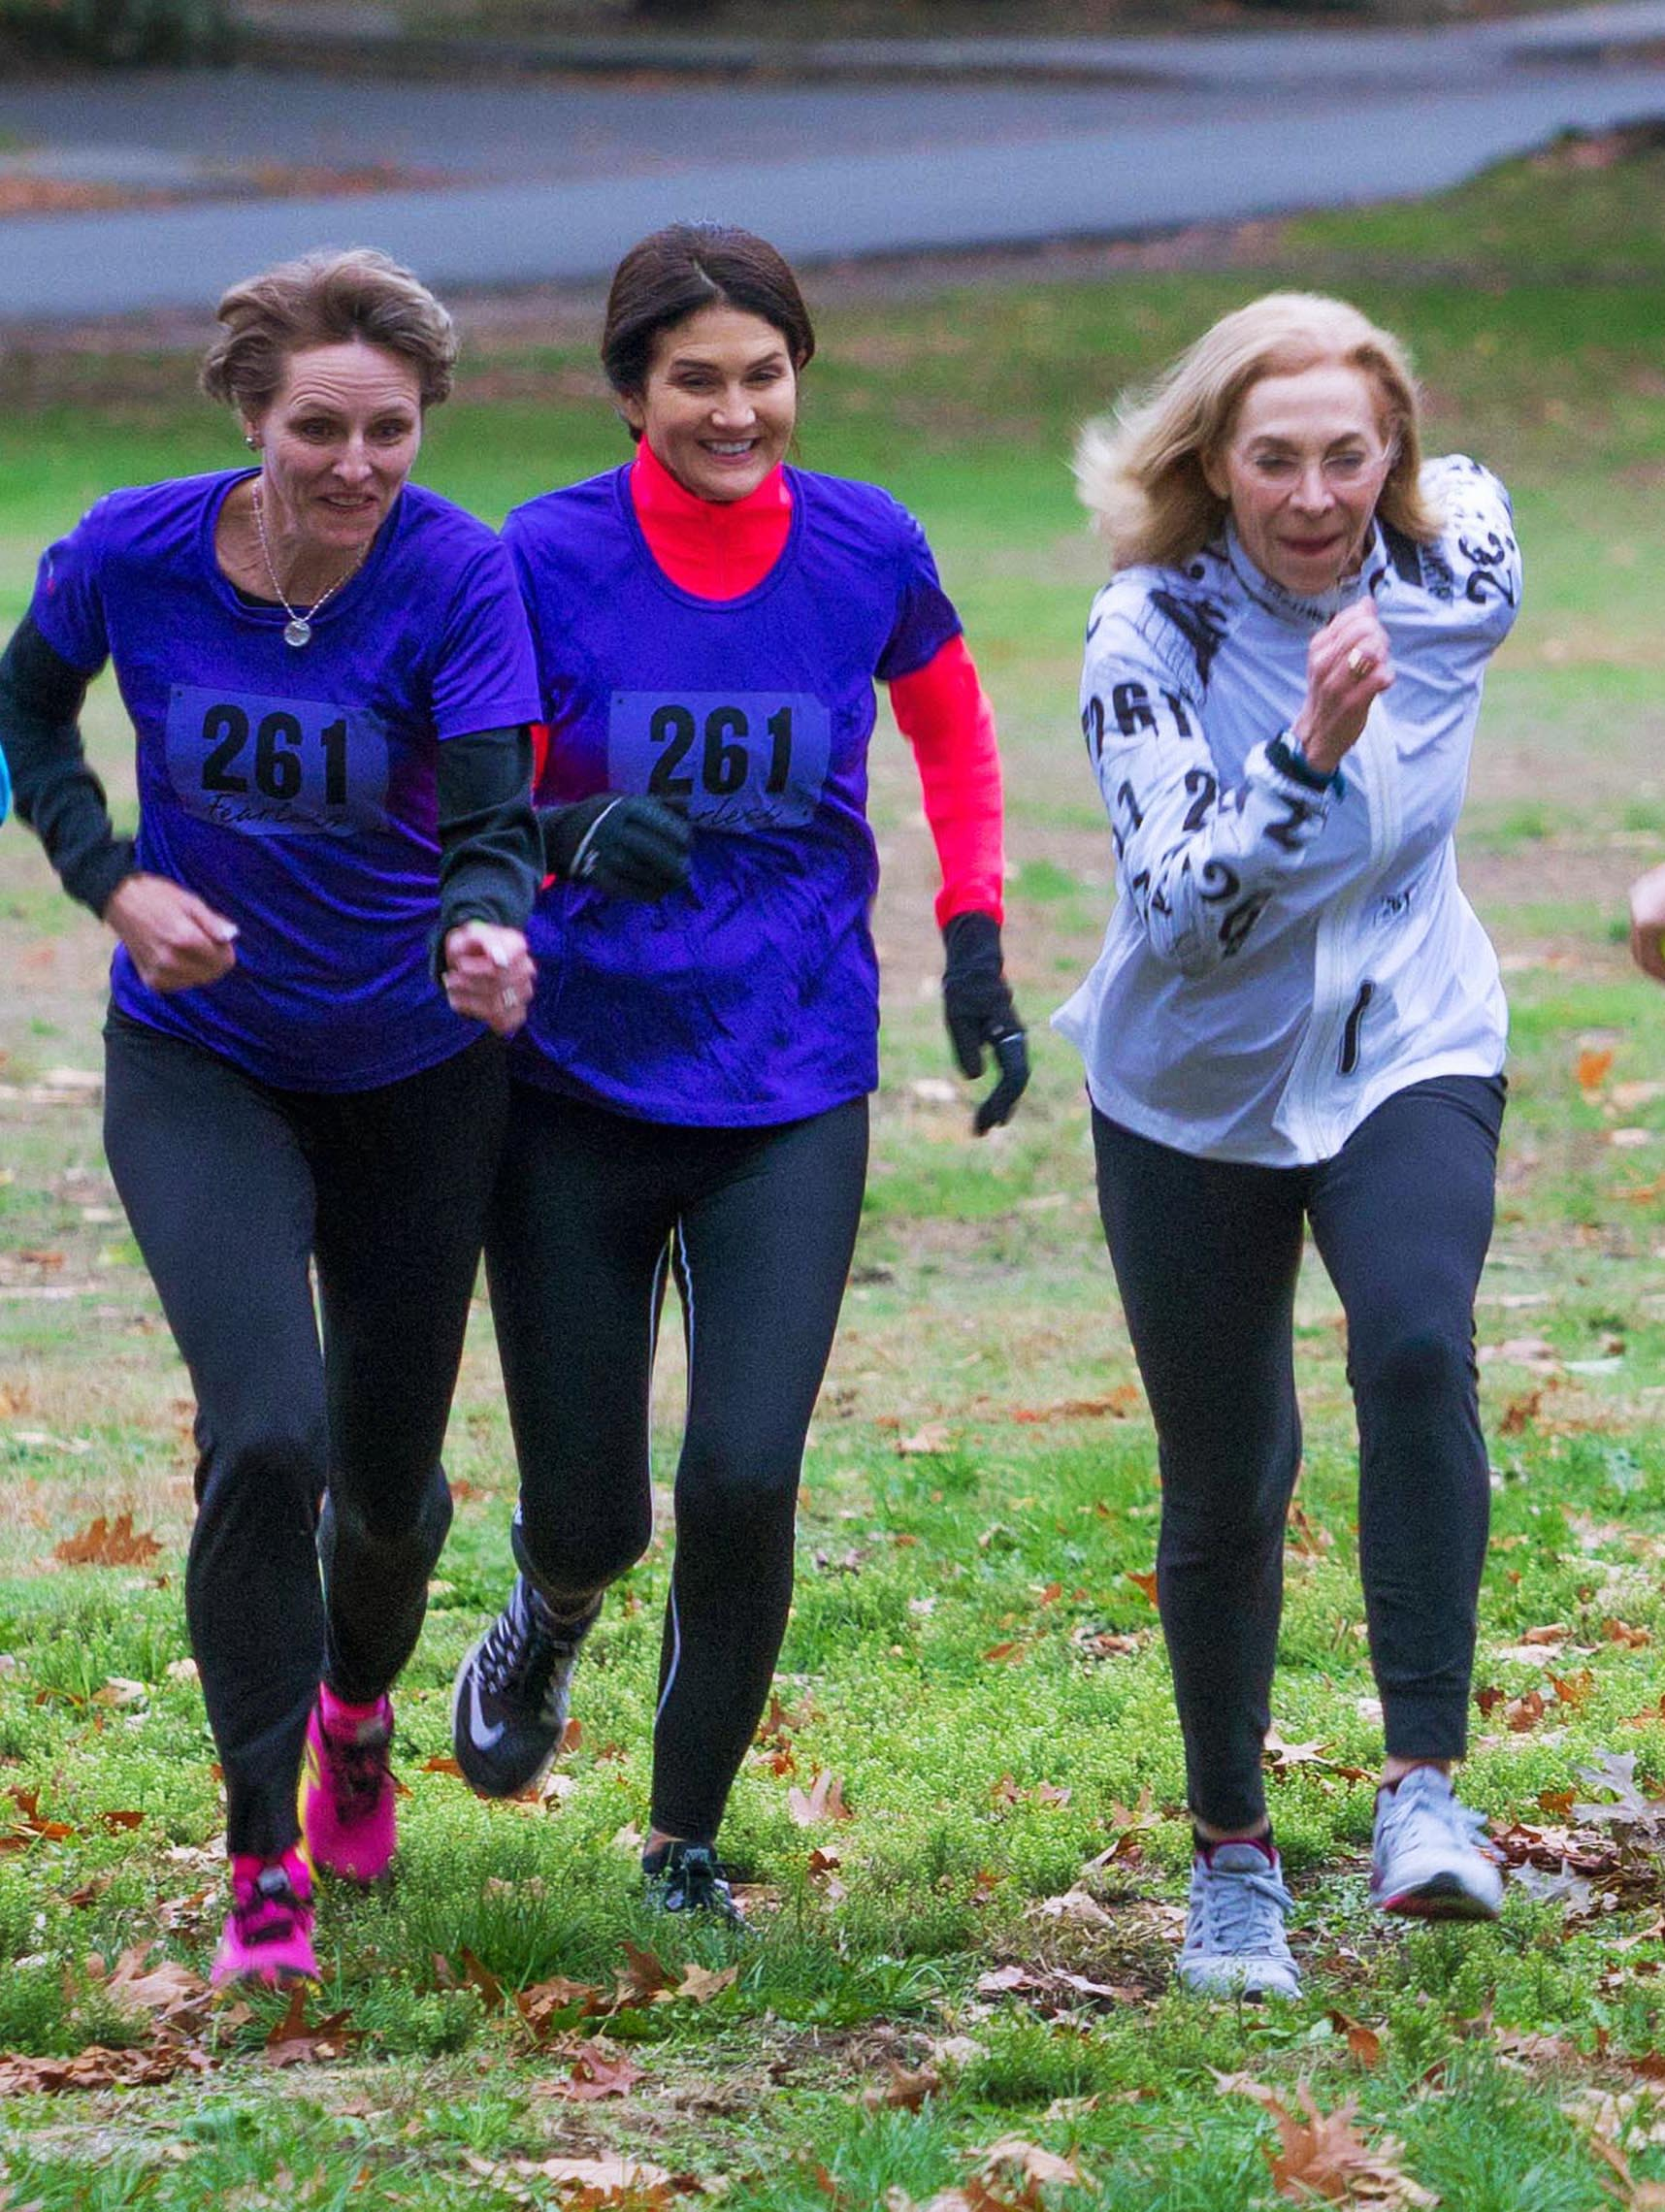 Team_261_fearless_trains_for_boston_marathon_with_kathrine_switzer